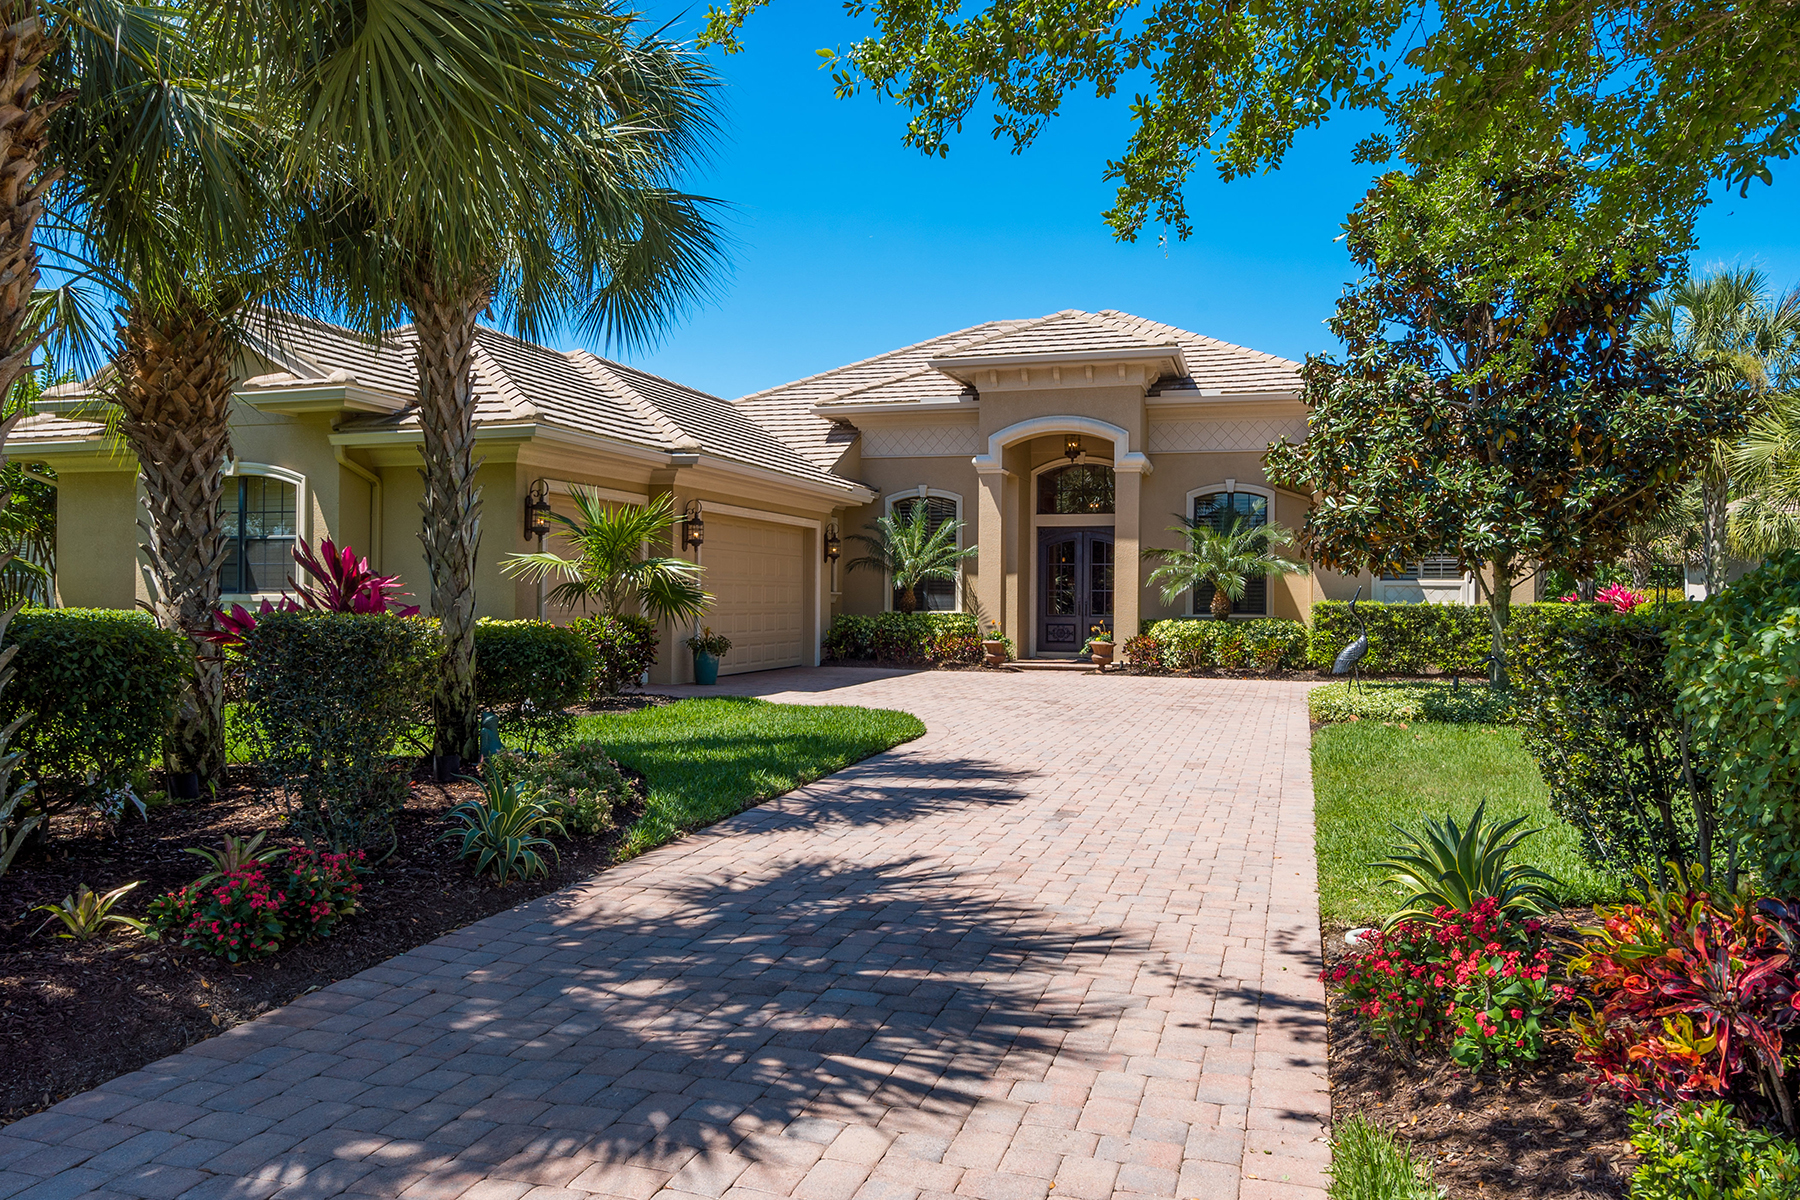 Single Family Home for Sale at FOUNDERS CLUB 3775 Caledonia Ln Sarasota, Florida, 34240 United States